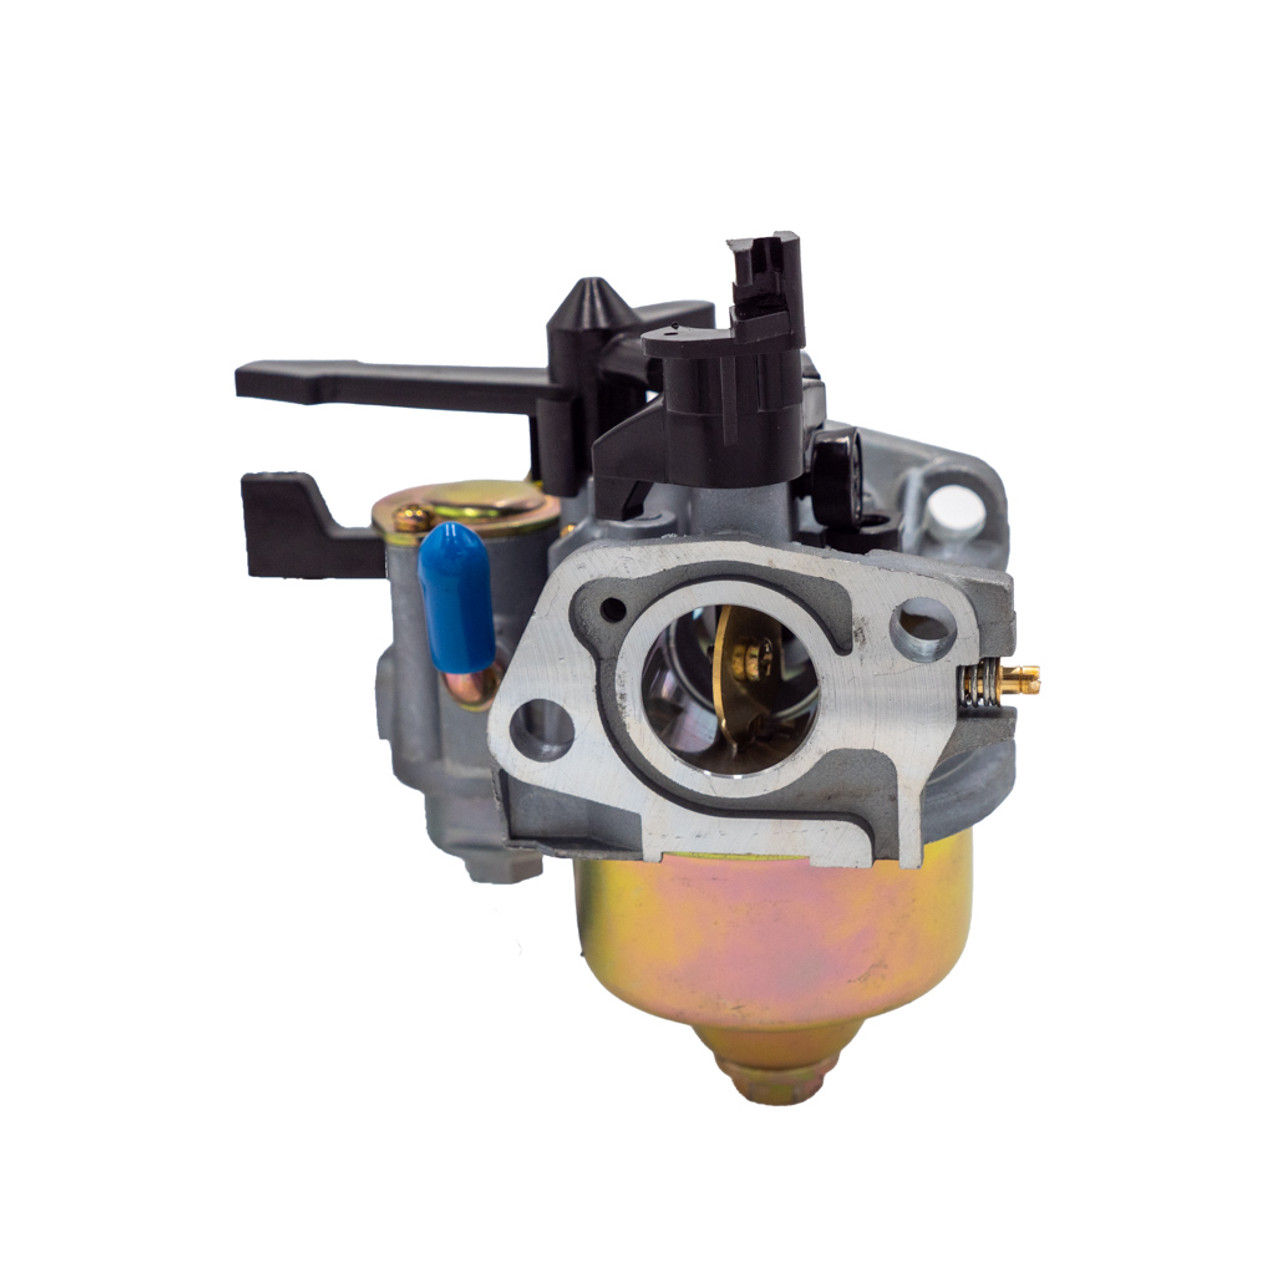 212cc /196cc Stock Clone Carburetors, Mid/Mini S